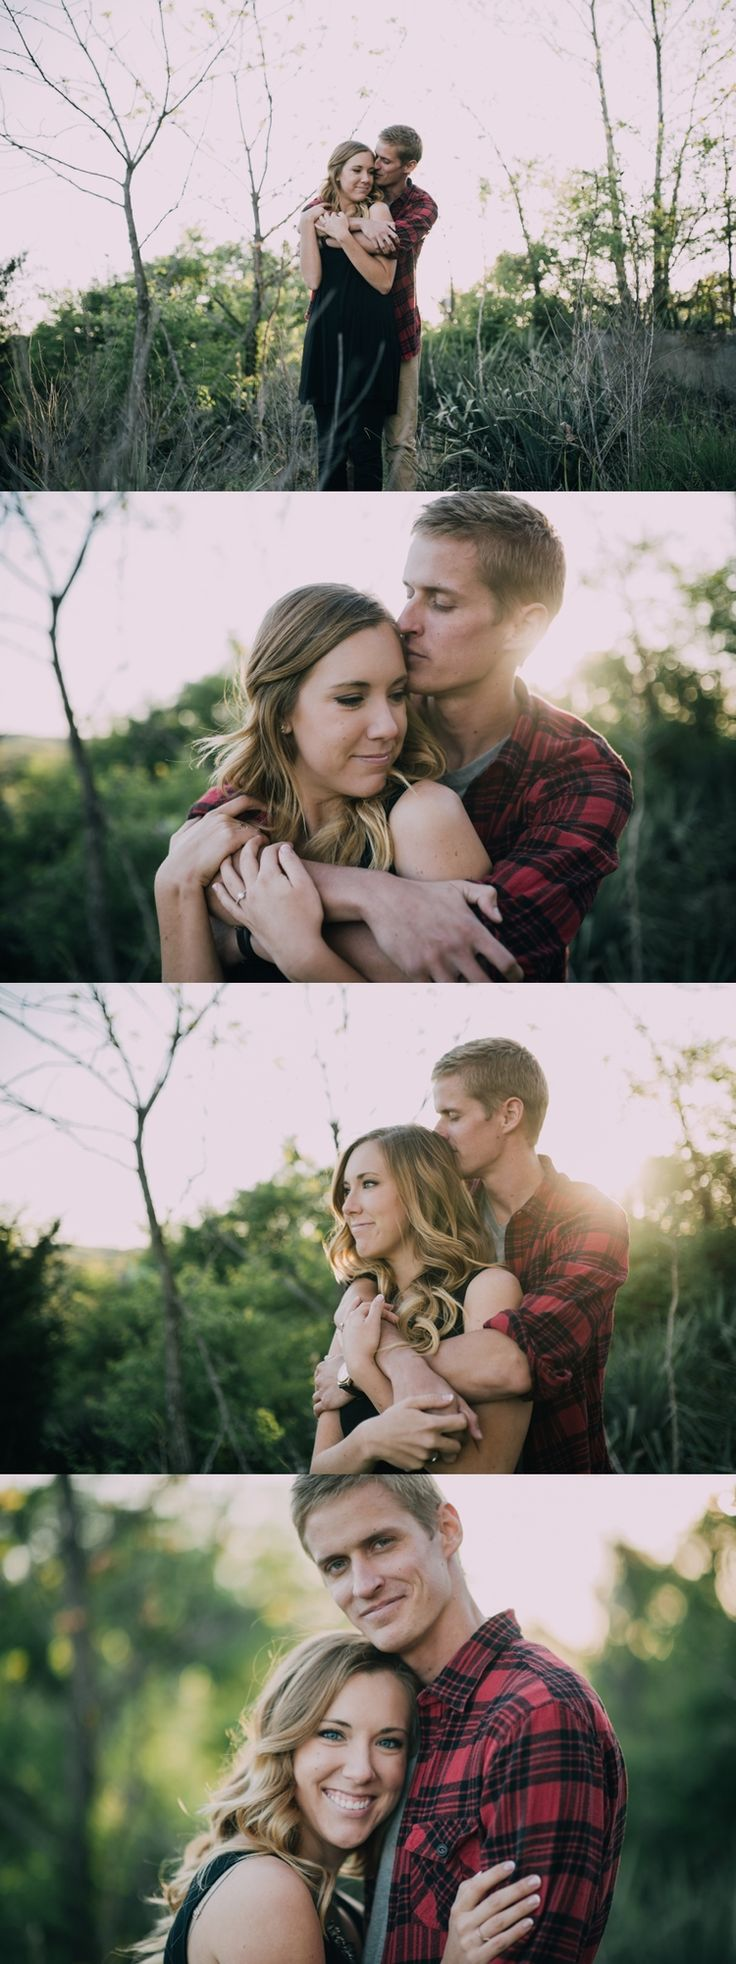 Boho Woodsy Engagement Photo Session - St. Louis Wedding Photographer — Charis Rowland Photography